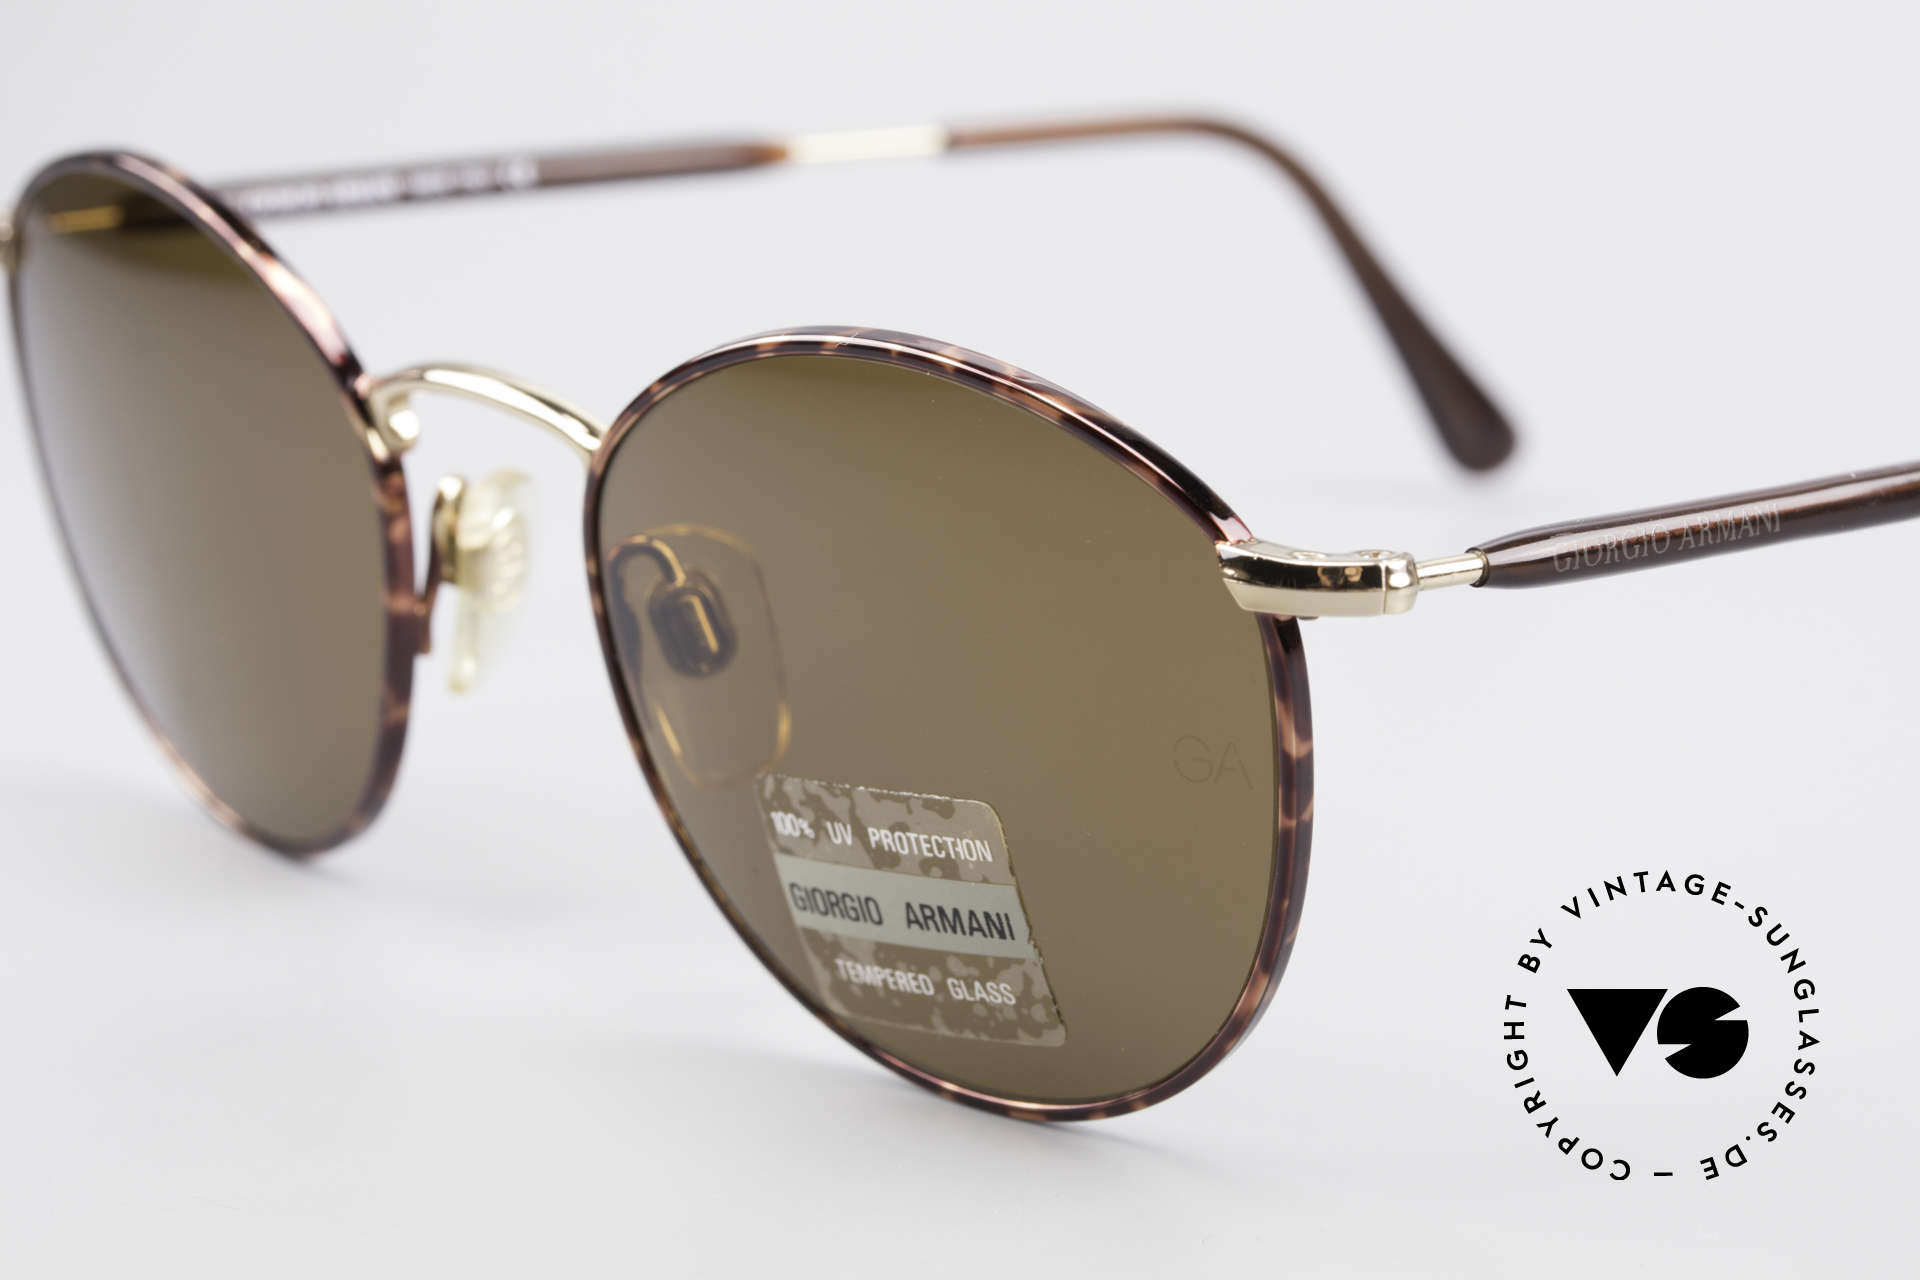 Giorgio Armani 627 Vintage Panto Sunglasses, high-end mineral lenses (100% UV) with GA engraving, Made for Men and Women